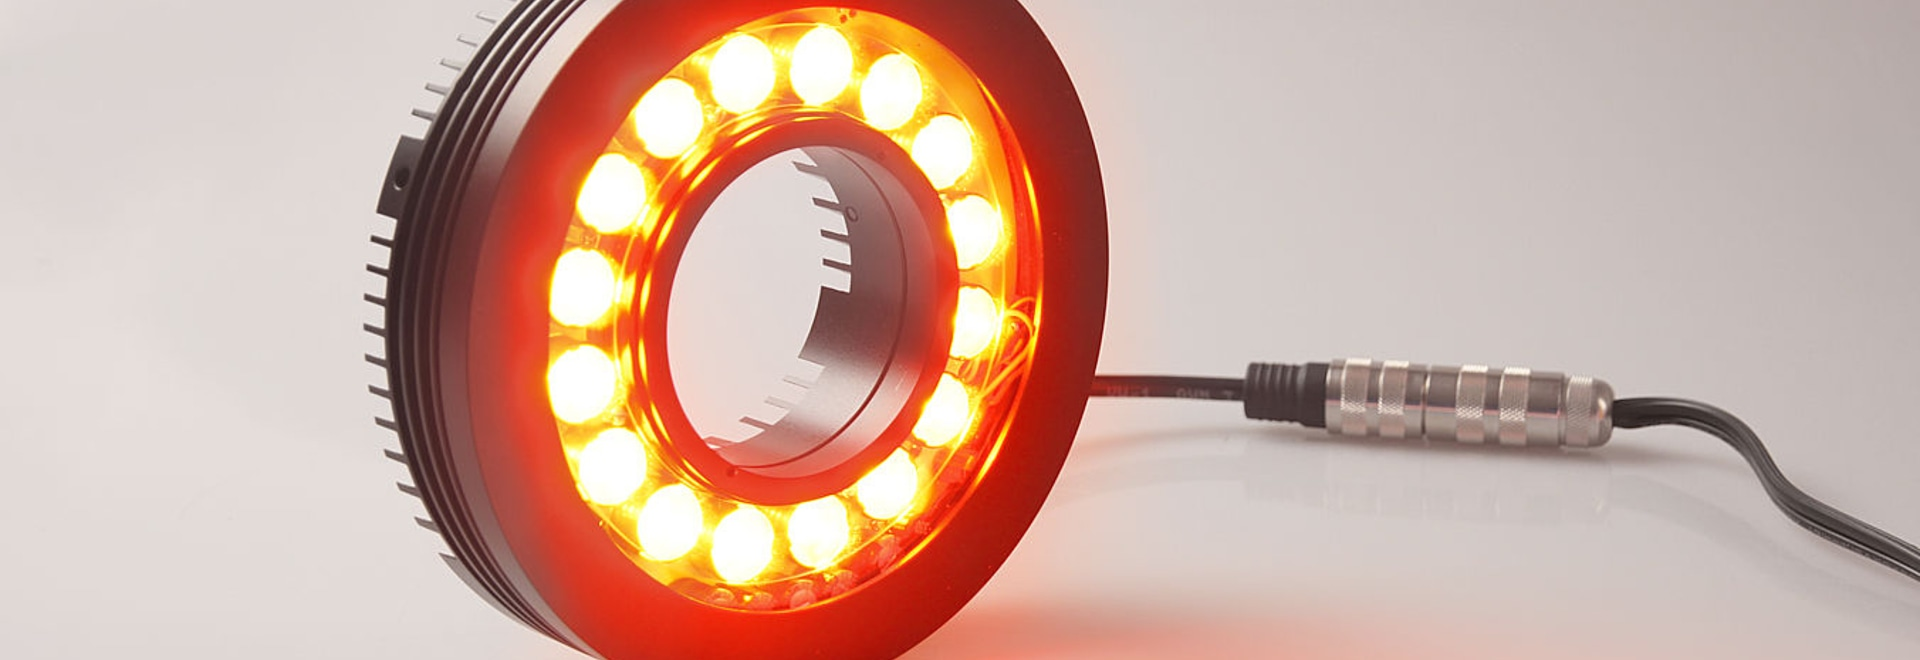 High Power LED lights by LUMIMAX®